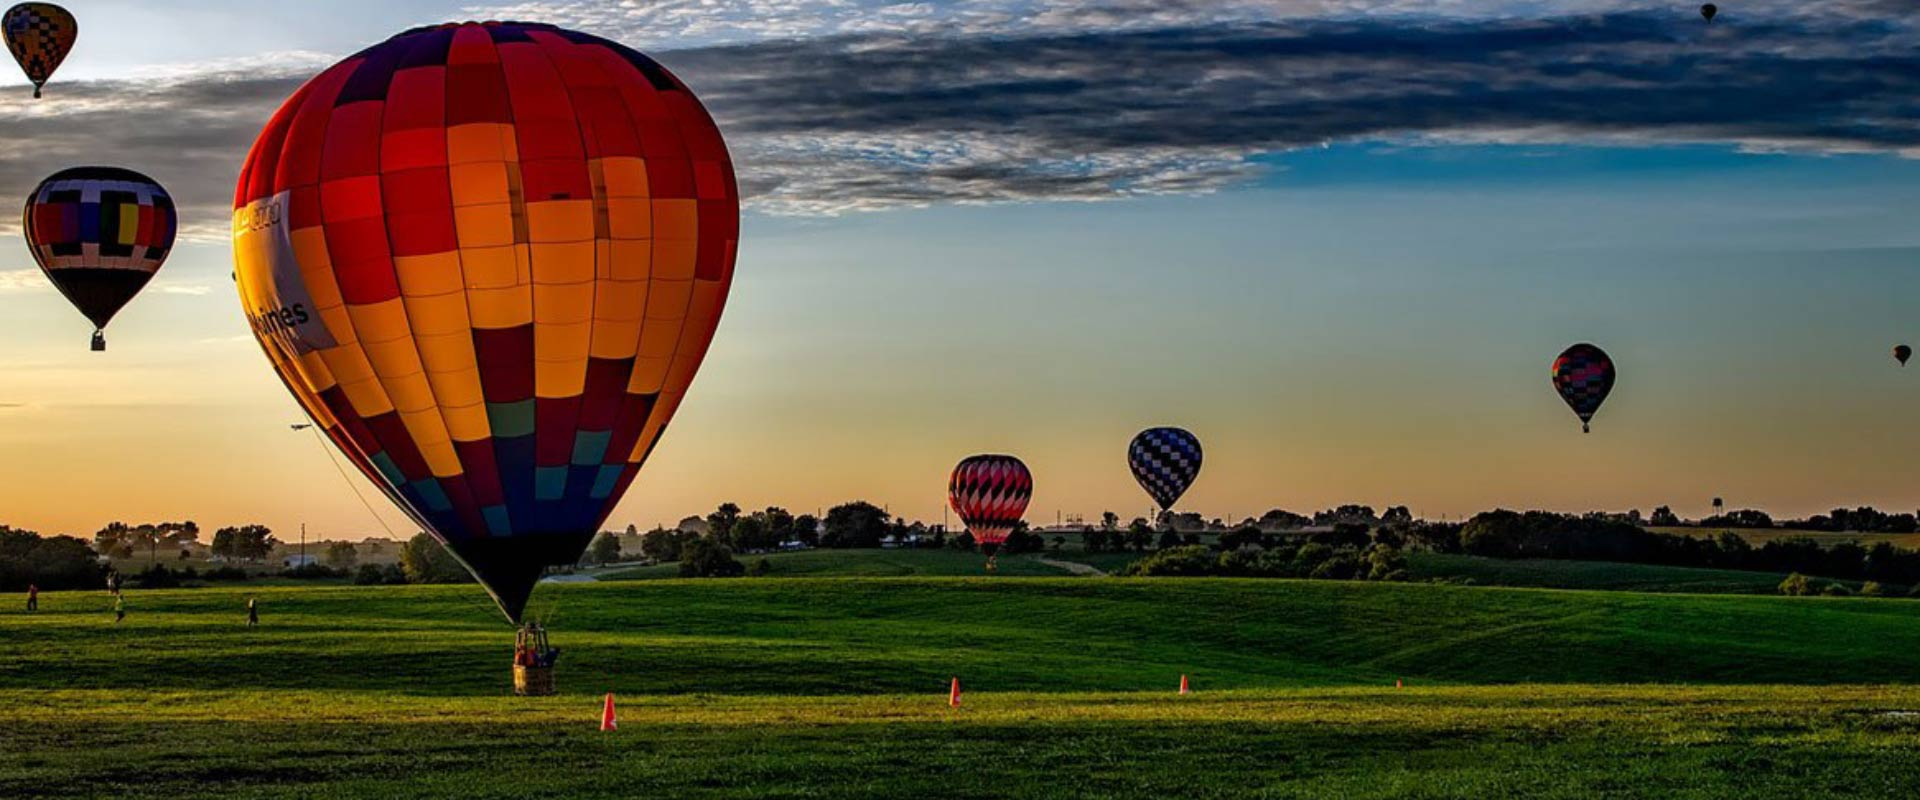 Uptuit Balloons' Hot Air Balloon Fleet